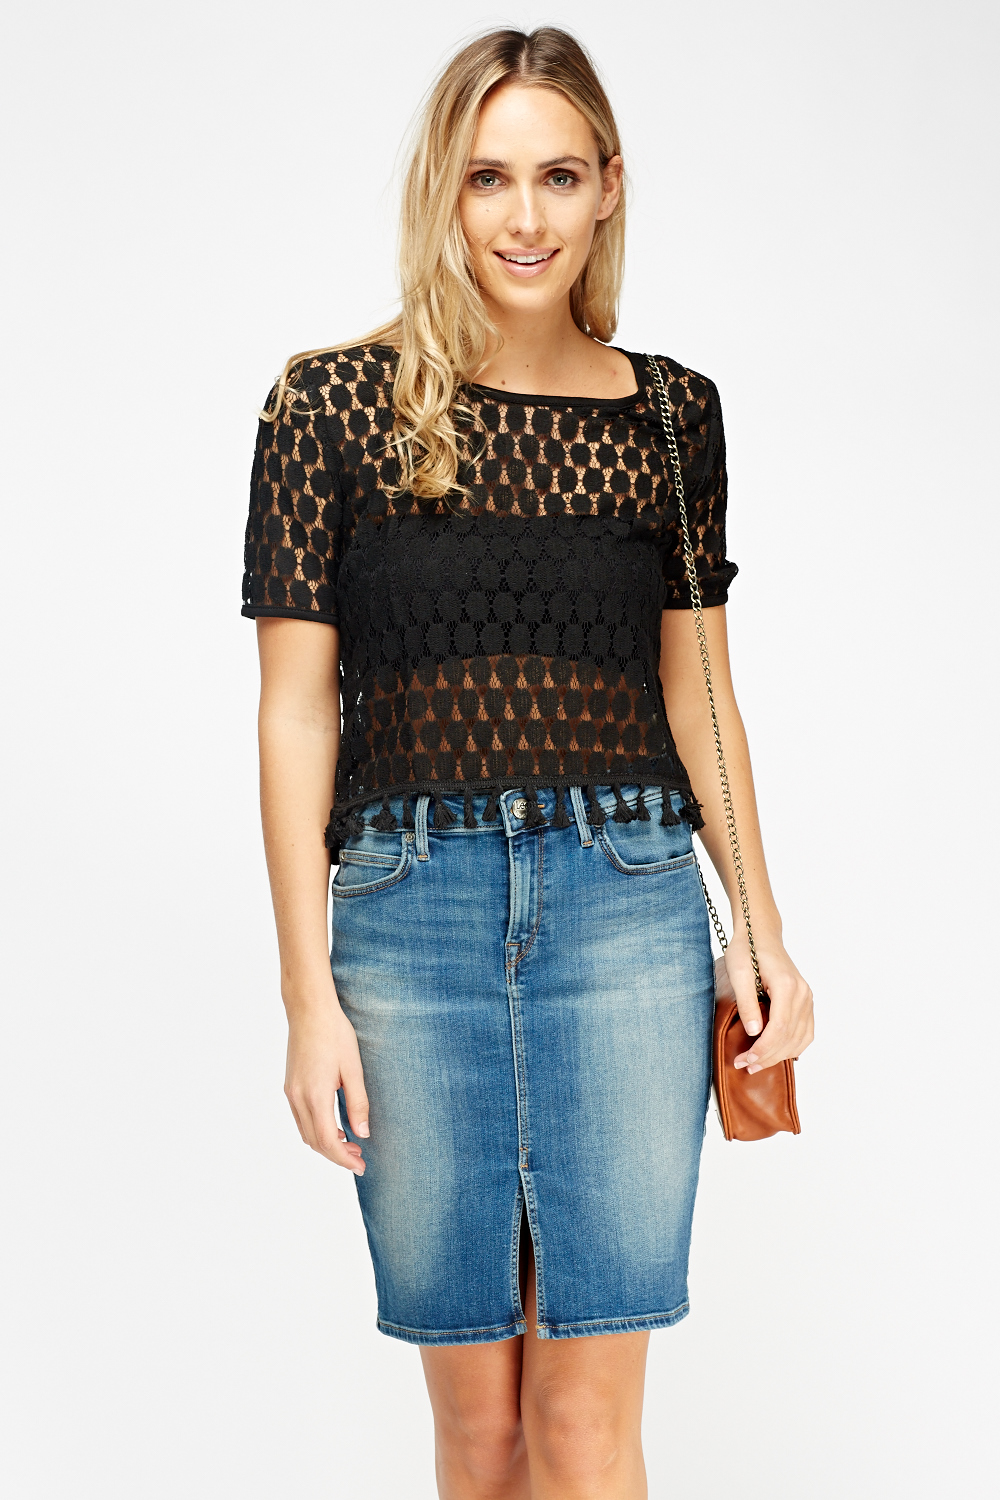 Find great deals on Women's Lee Clothing at Kohl's today!Free Store Pick-Up· Hassle-Free Returns· Orders $75+ Ship Free· Incredible SavingsBrands: Gloria Vanderbilt, Levi's, ZeroXposur, Lee, Jessica Howard, Champion, Chaps.